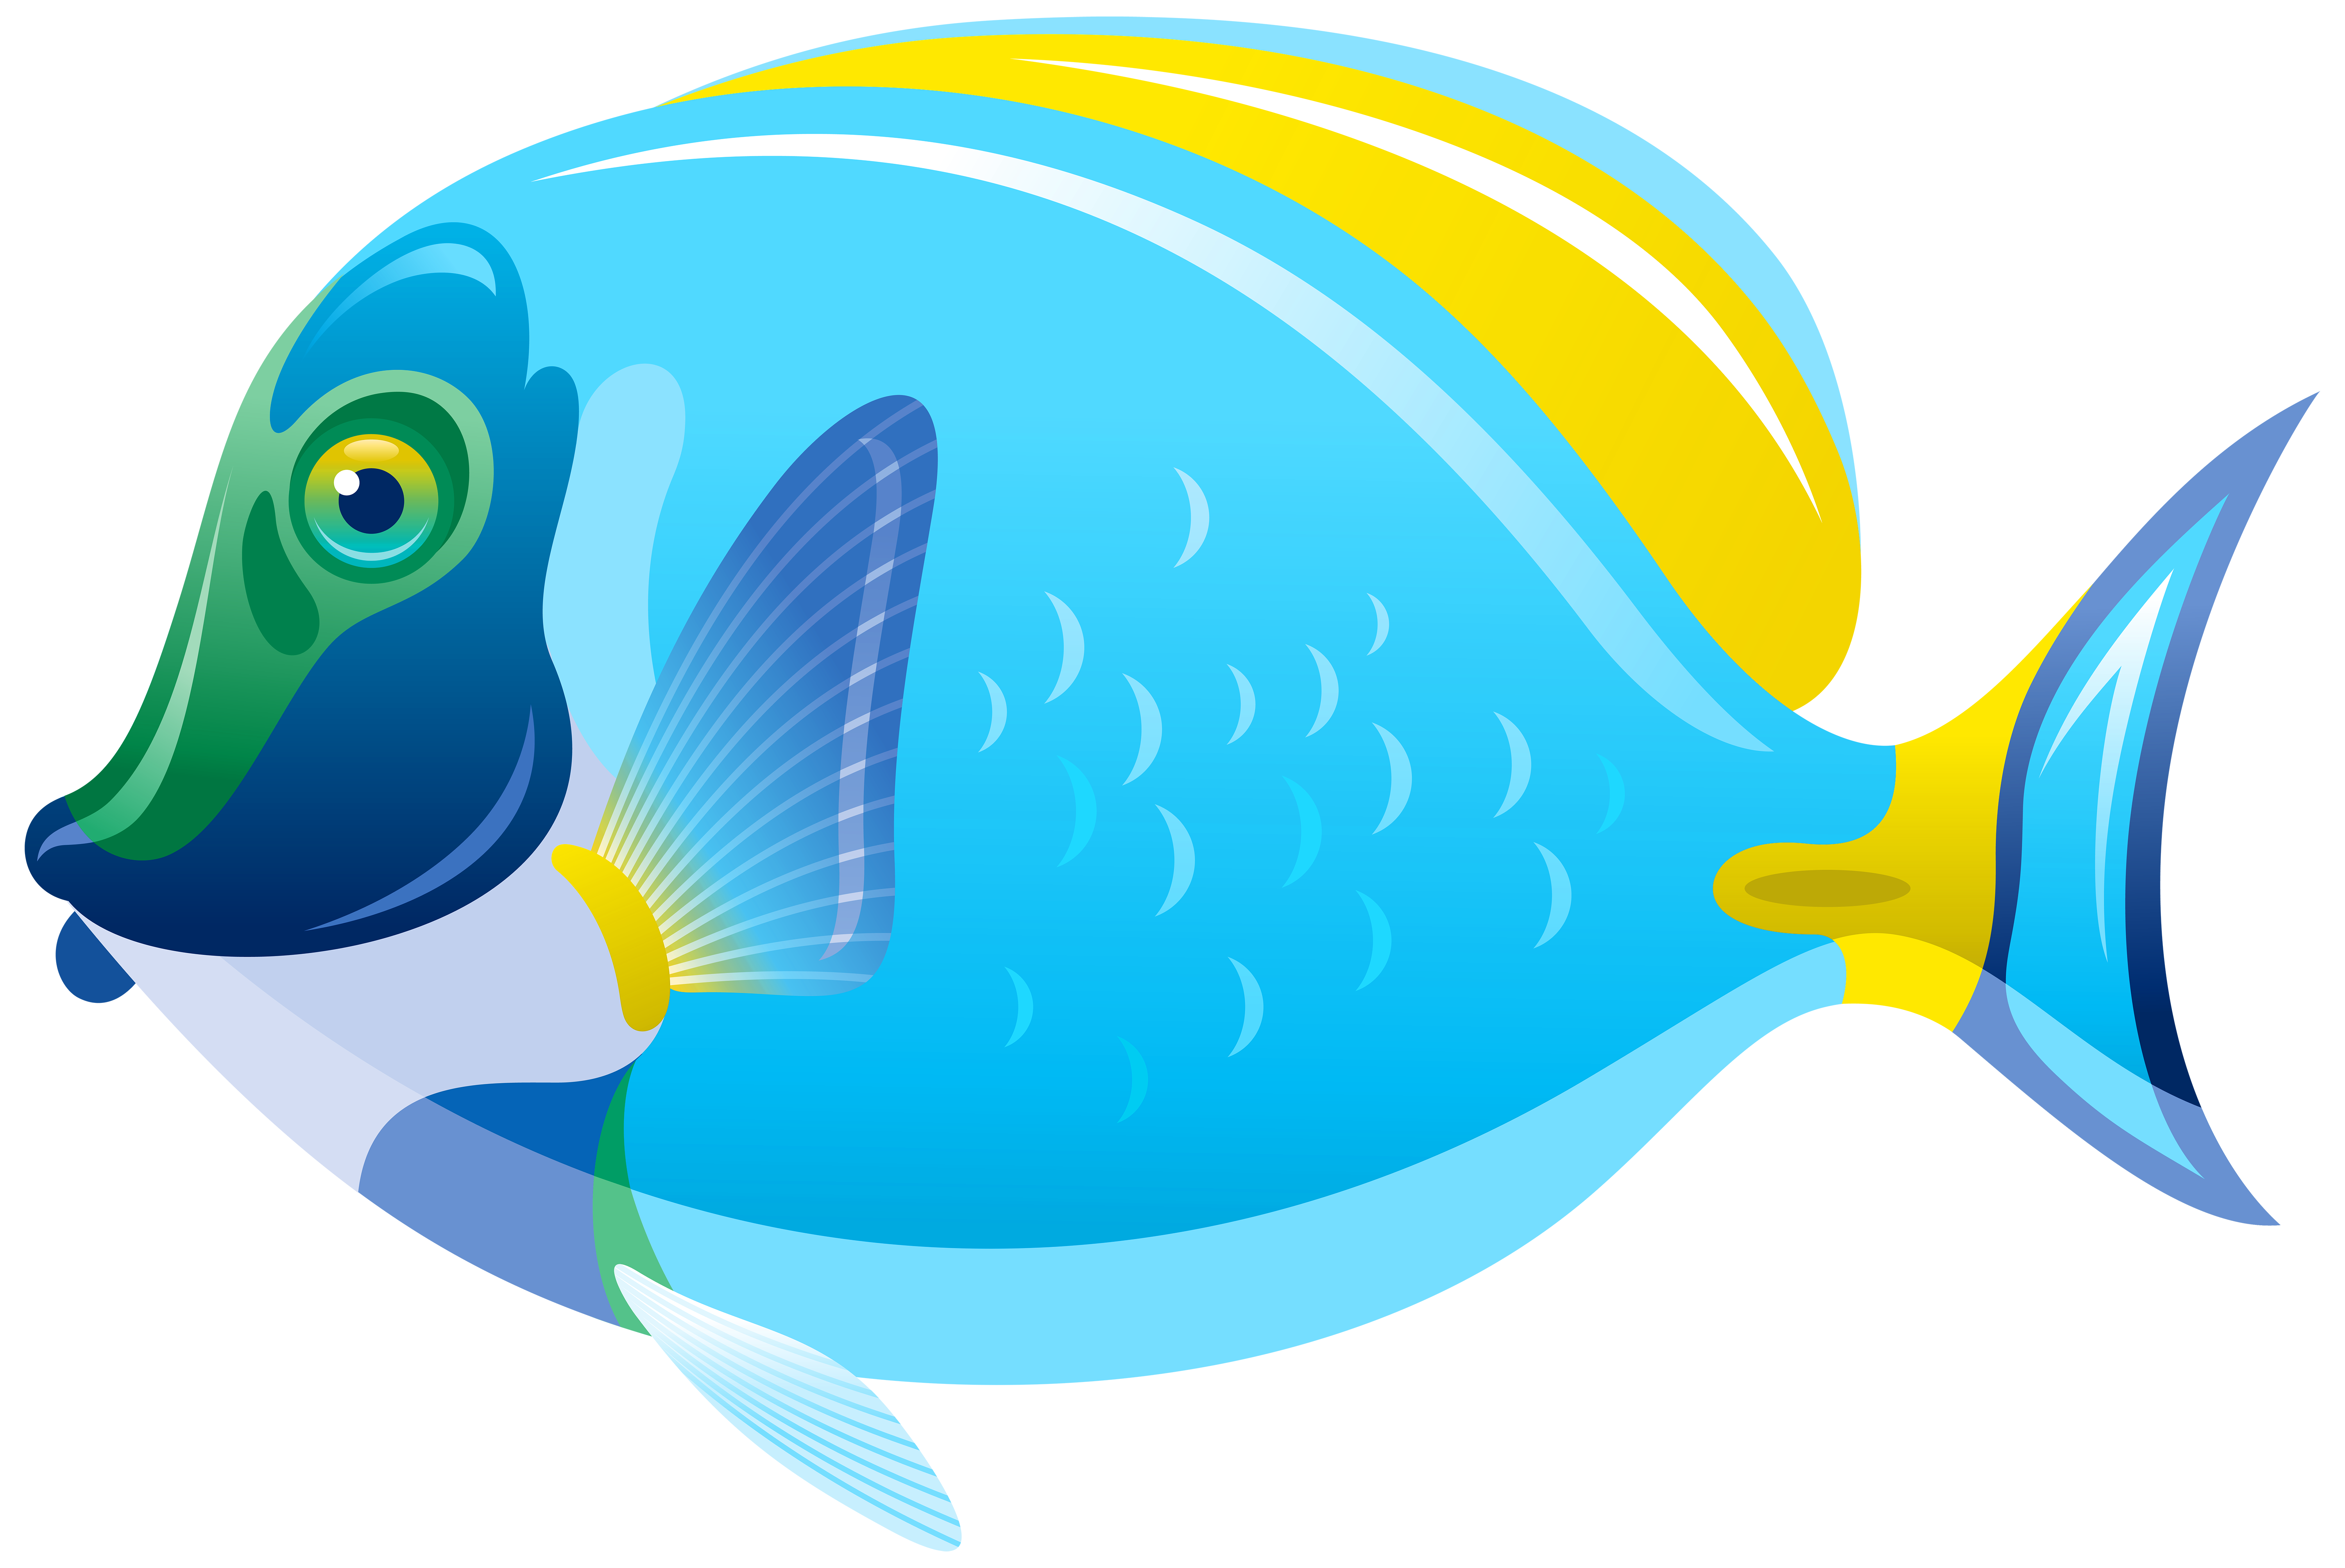 Fish clip art png. Image gallery yopriceville high